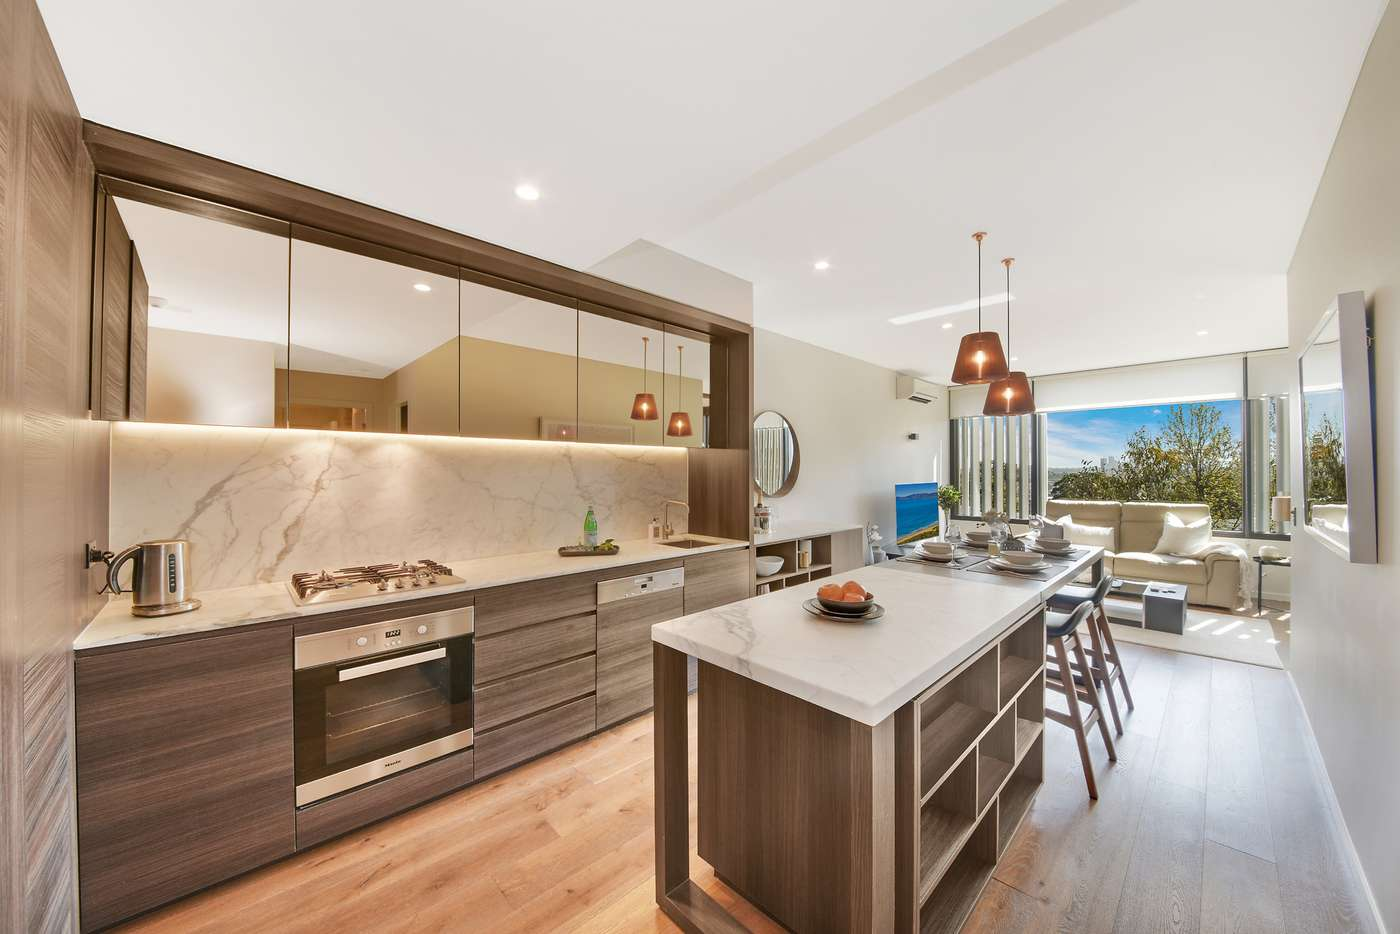 Main view of Homely apartment listing, 305/116 Belmont Road, Mosman NSW 2088